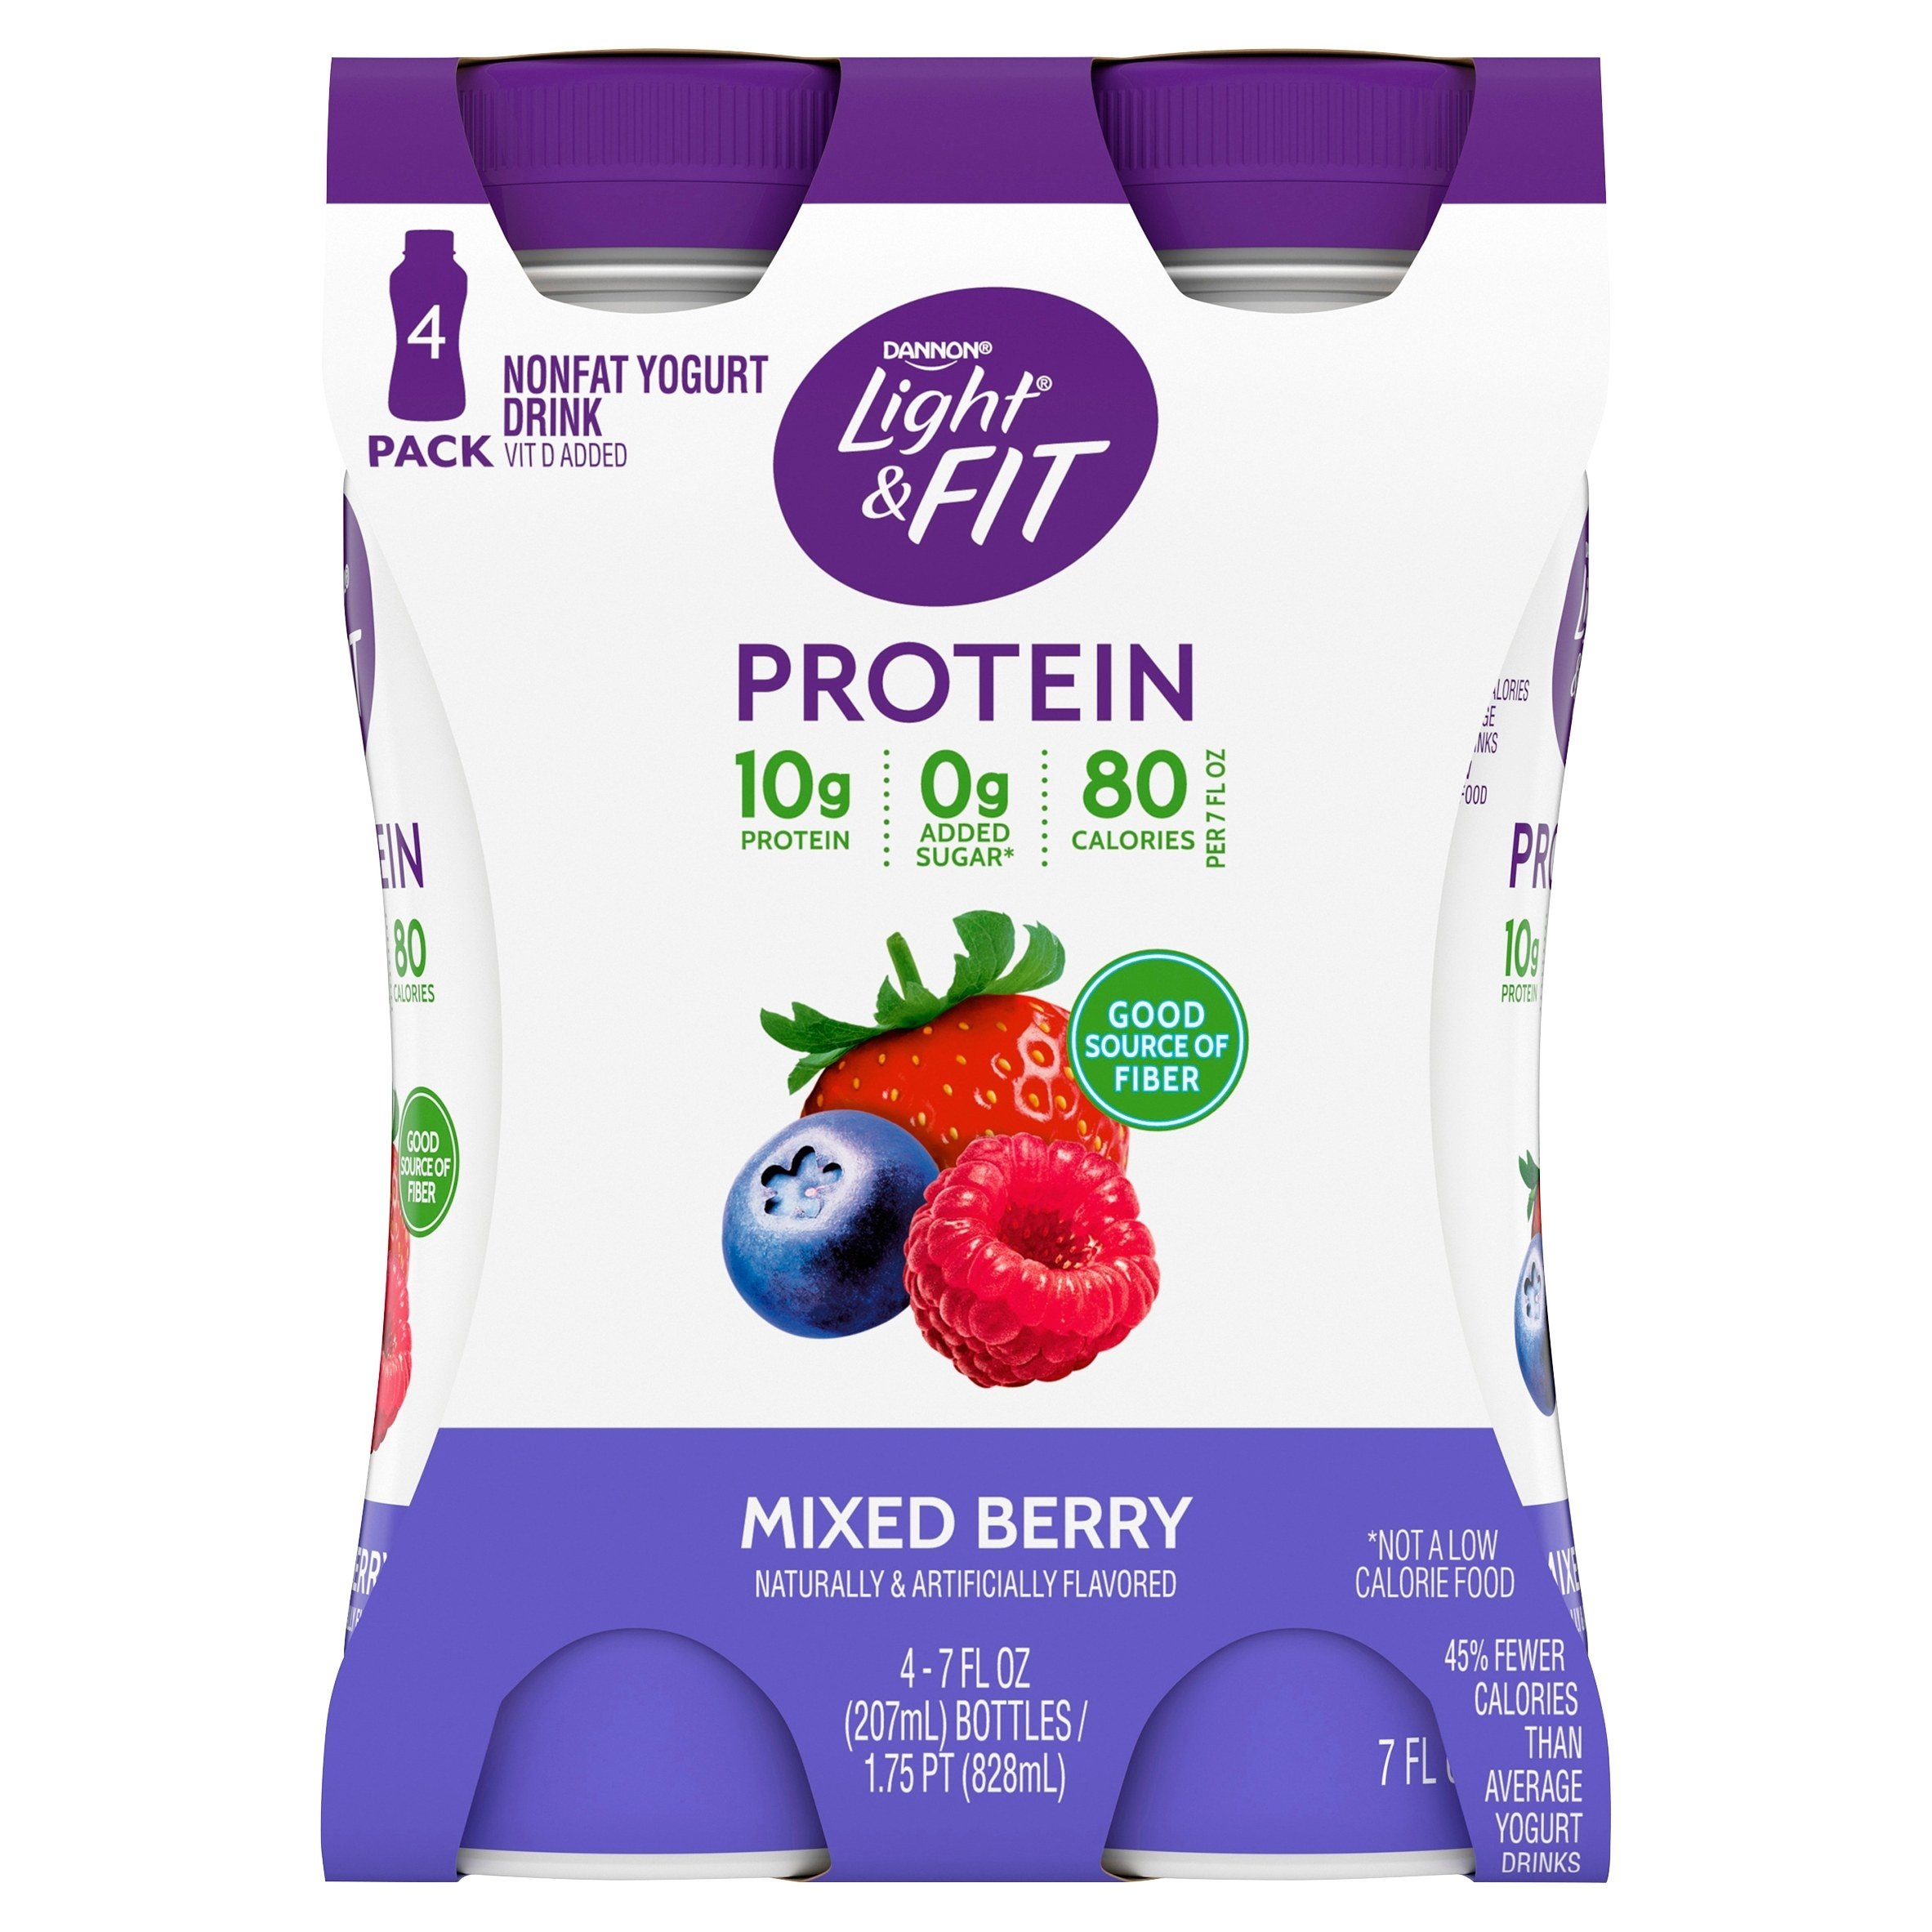 4 pack of Dannon Light & Fit mixed berry yogurt drink